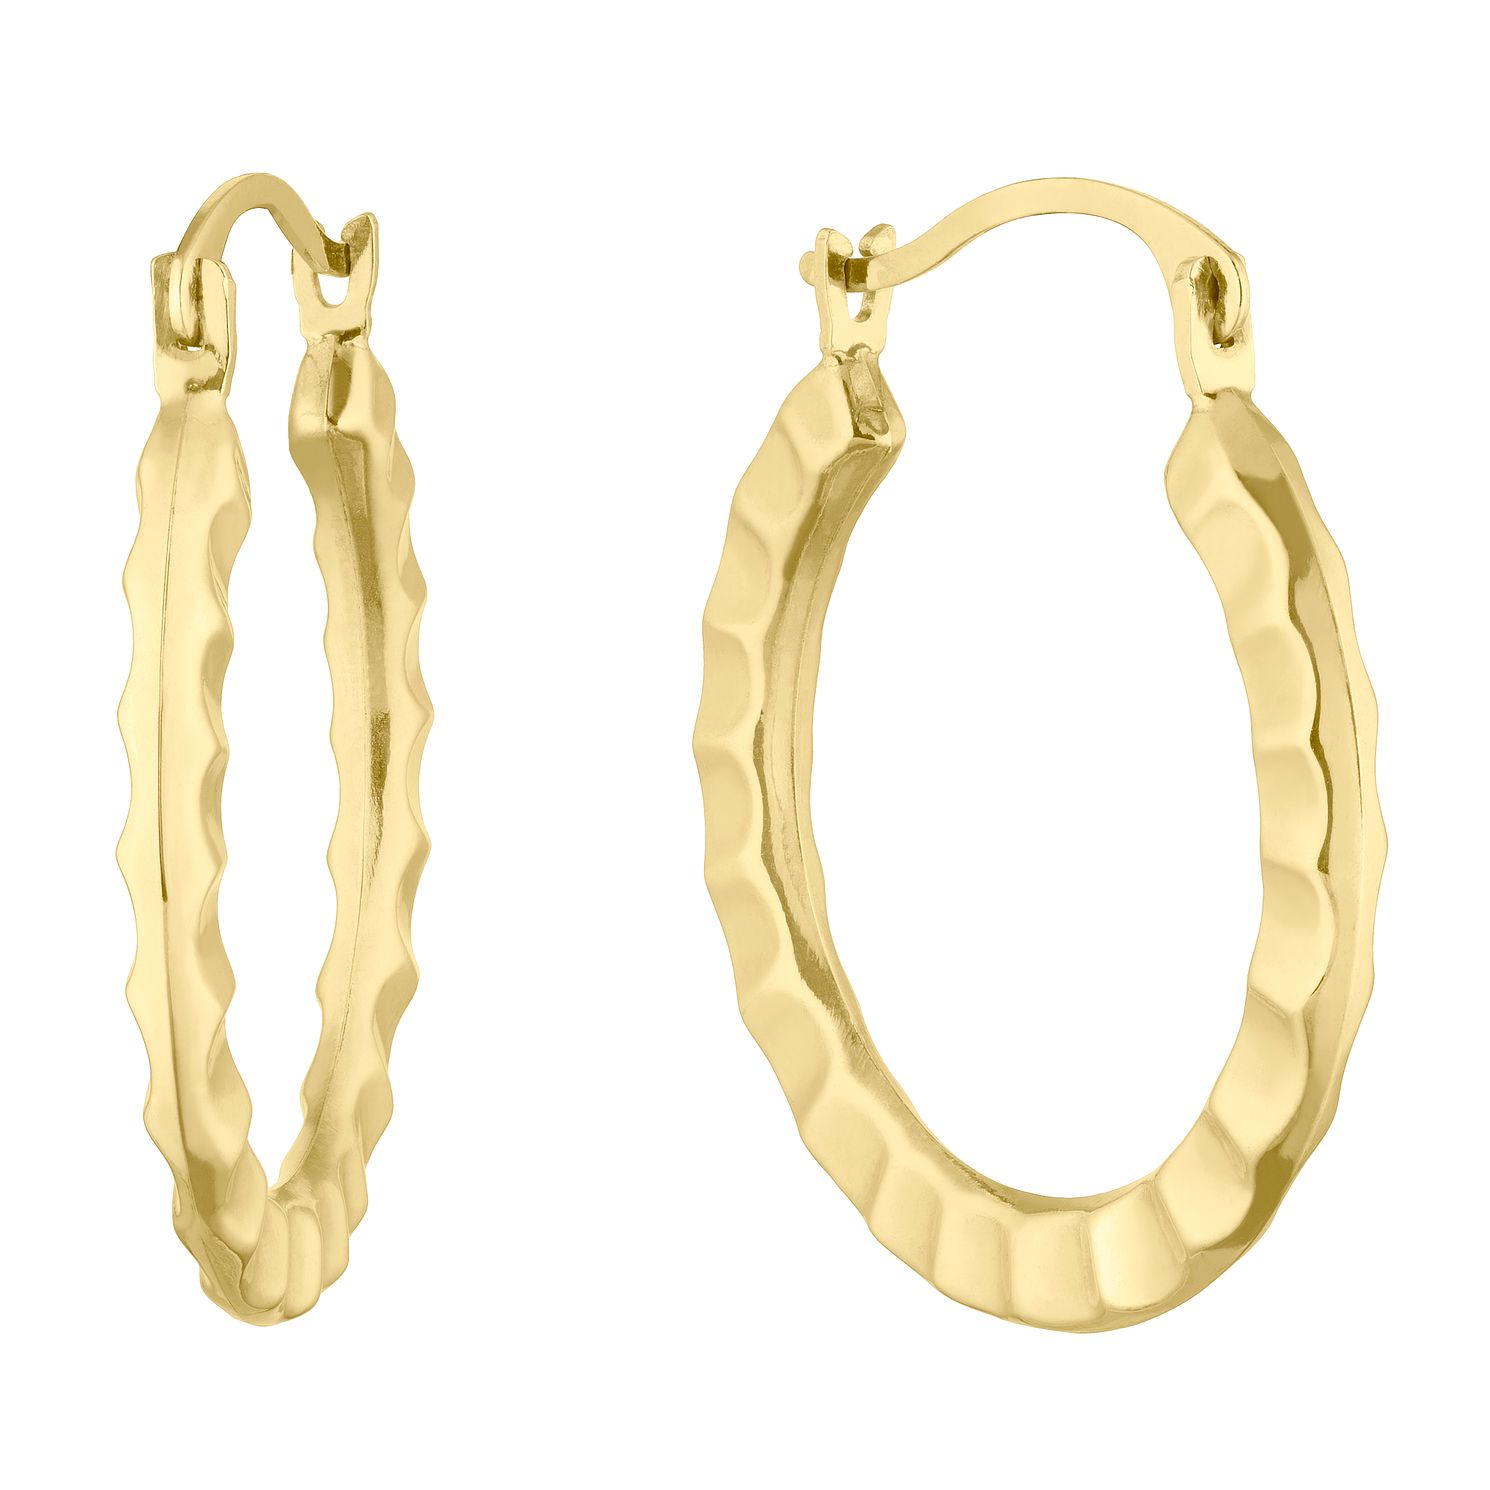 9ct Yellow Gold Hammered Creole Hoop Earrings - Product number 5126002